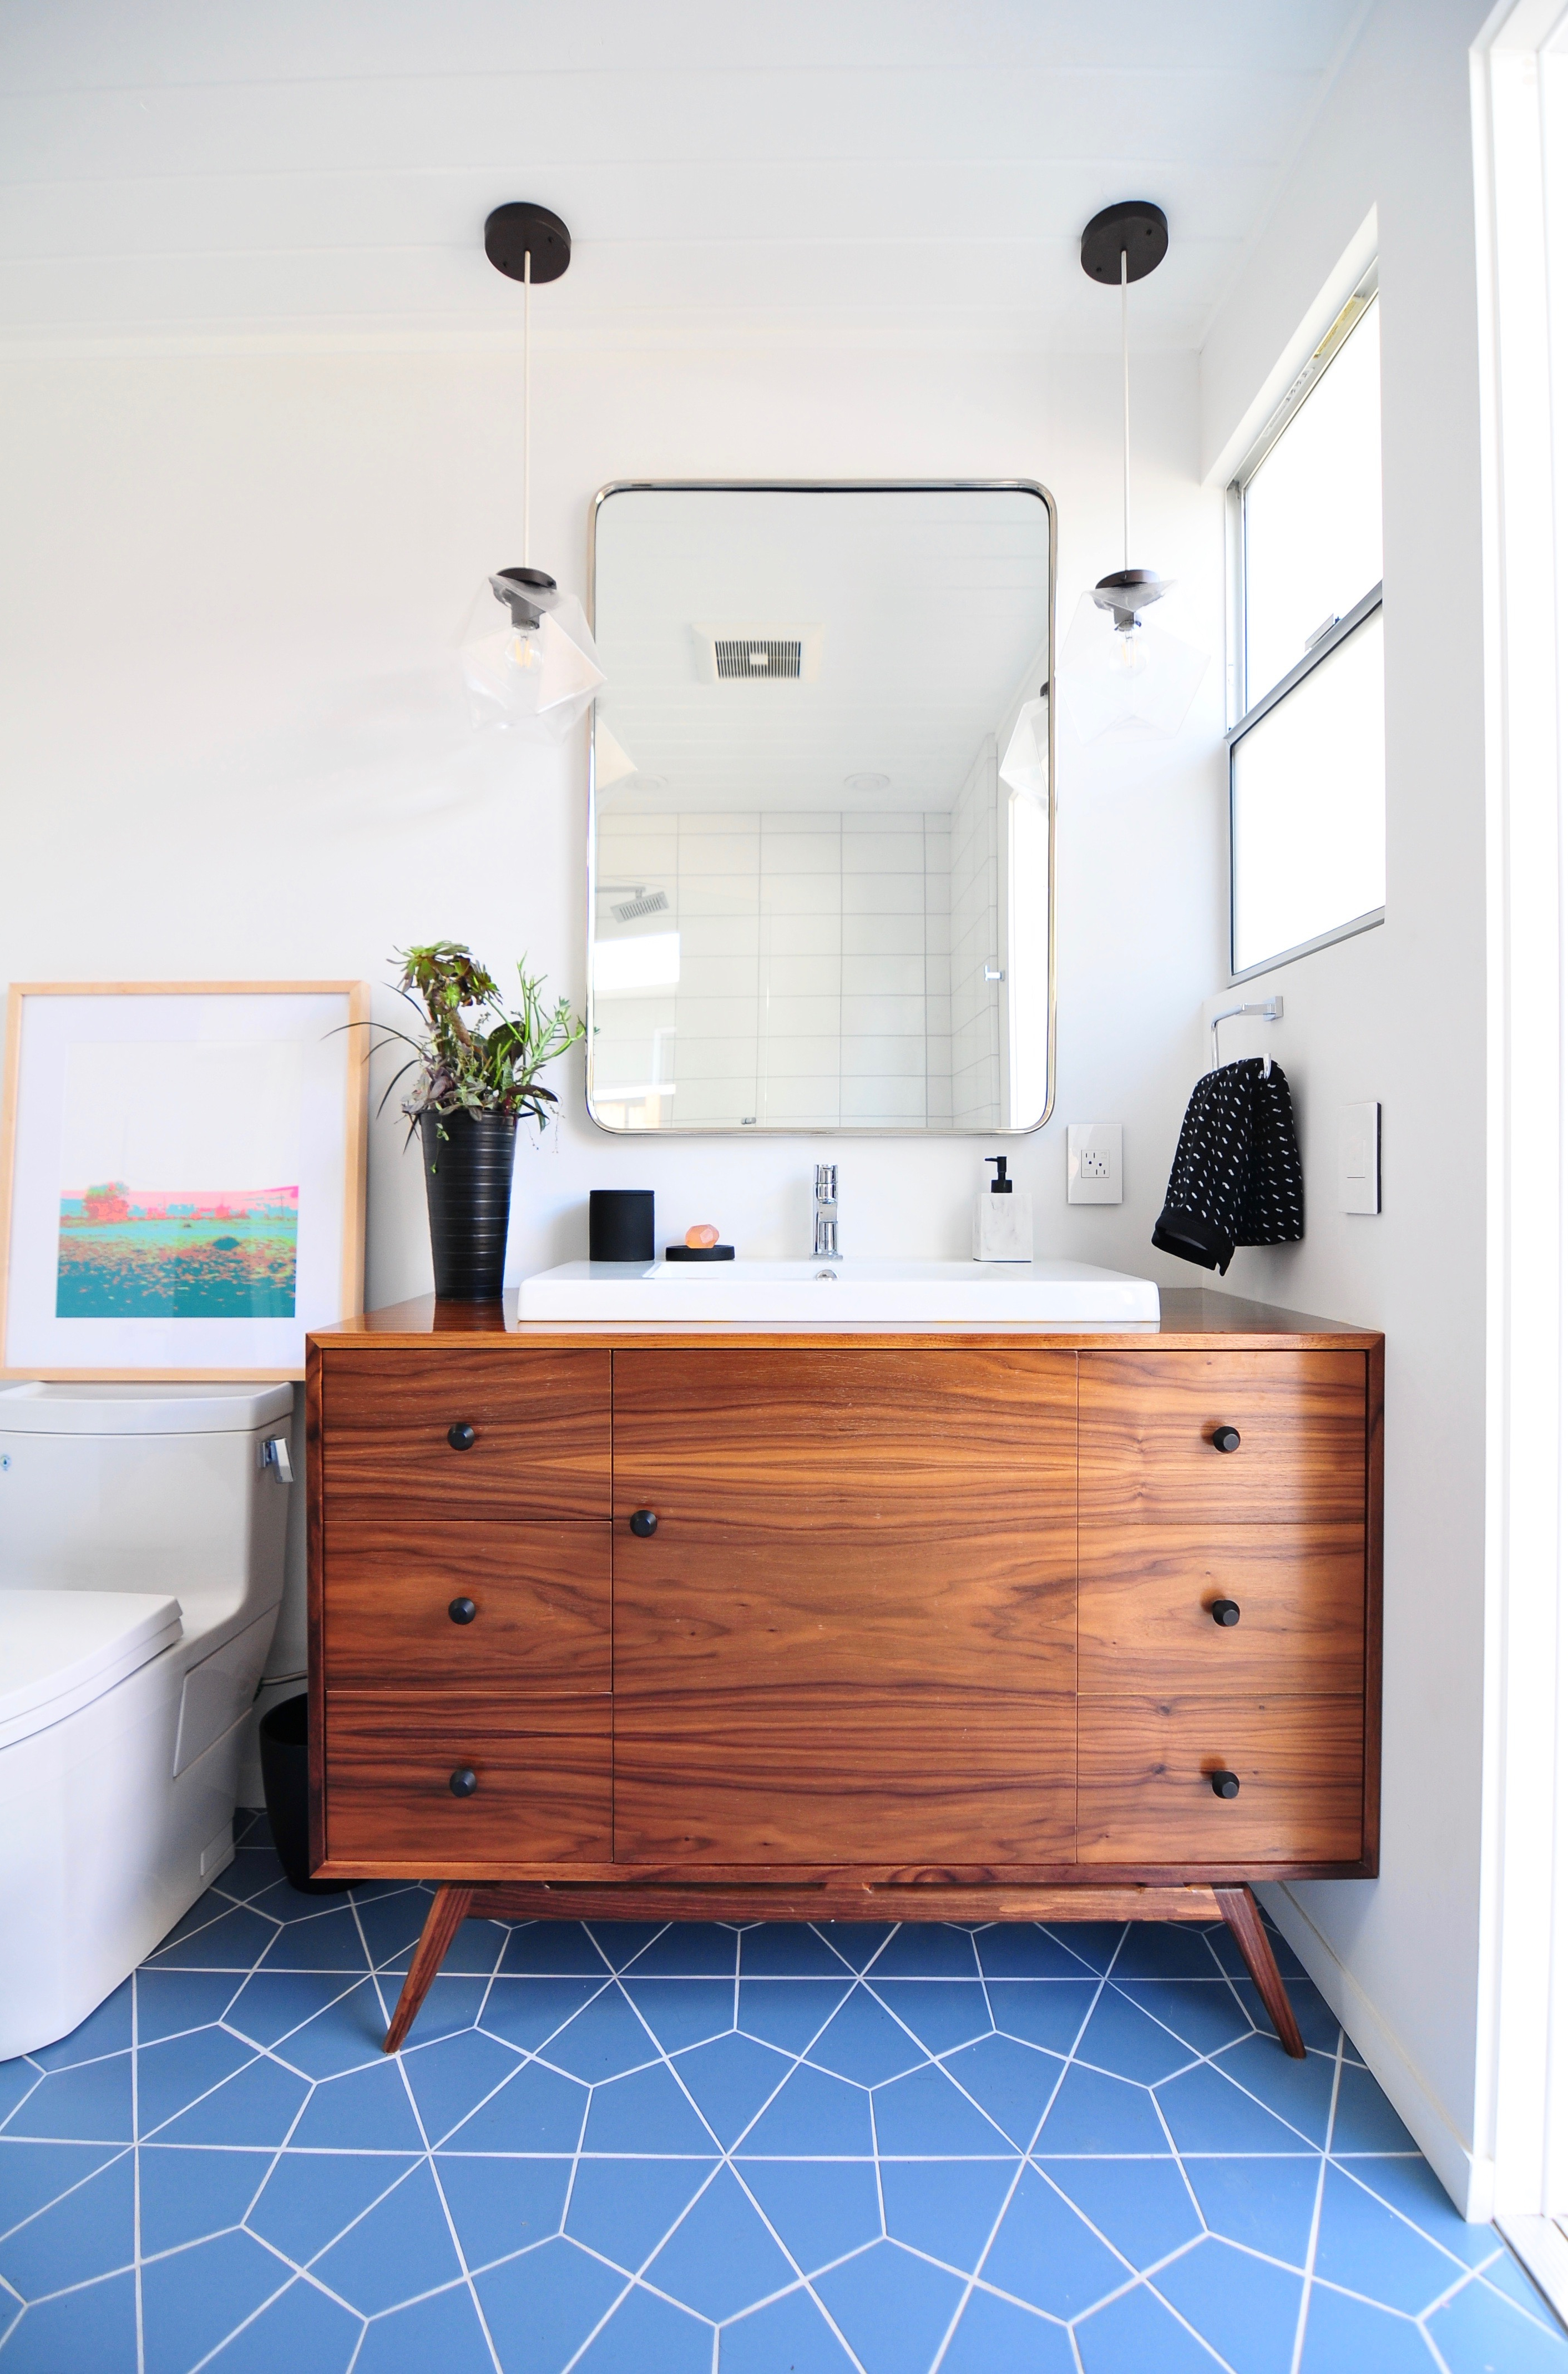 Installation Stories Midcentury Meets Modern Bathroom